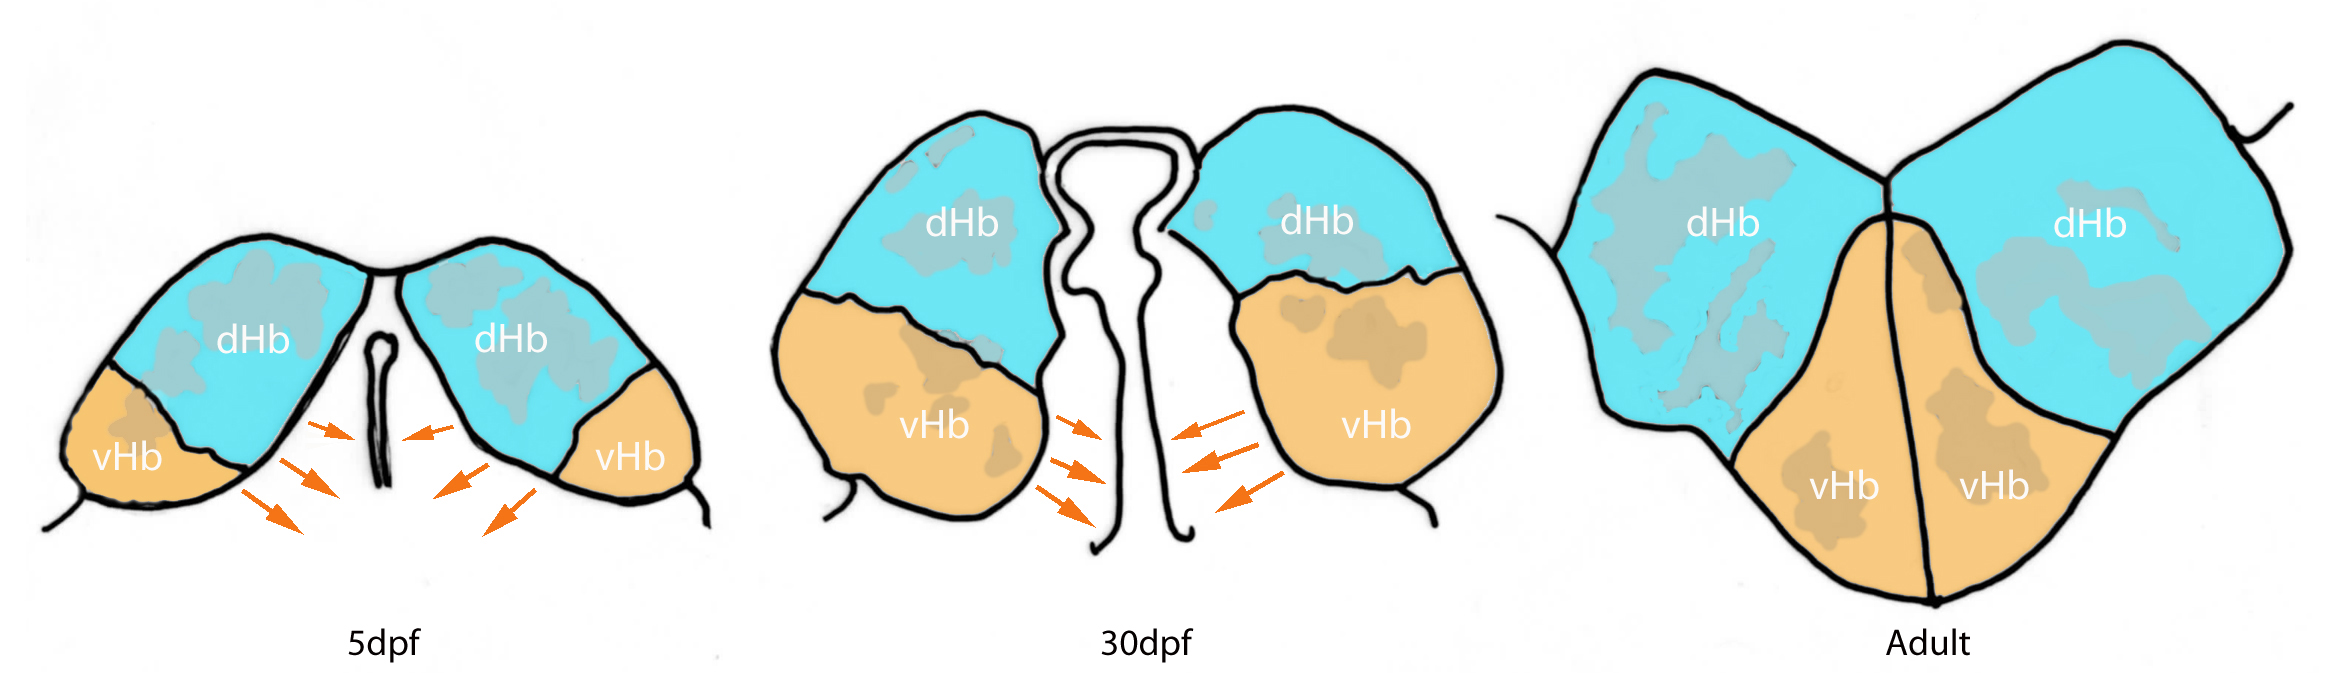 Schematic showing the relative positions of the dosal and ventral habenulae subnuclei at different stages of development .  At 5dpf the vHb subnucleus is lateral to the dorsal habenular nuclei in the habenular primordium. This region then migrates ventro-medially to result in the arrangement we observe in the adult zebrafish. dHb (blue) and vHb(orange)(Schematic adapted from Amo et al, 2010).